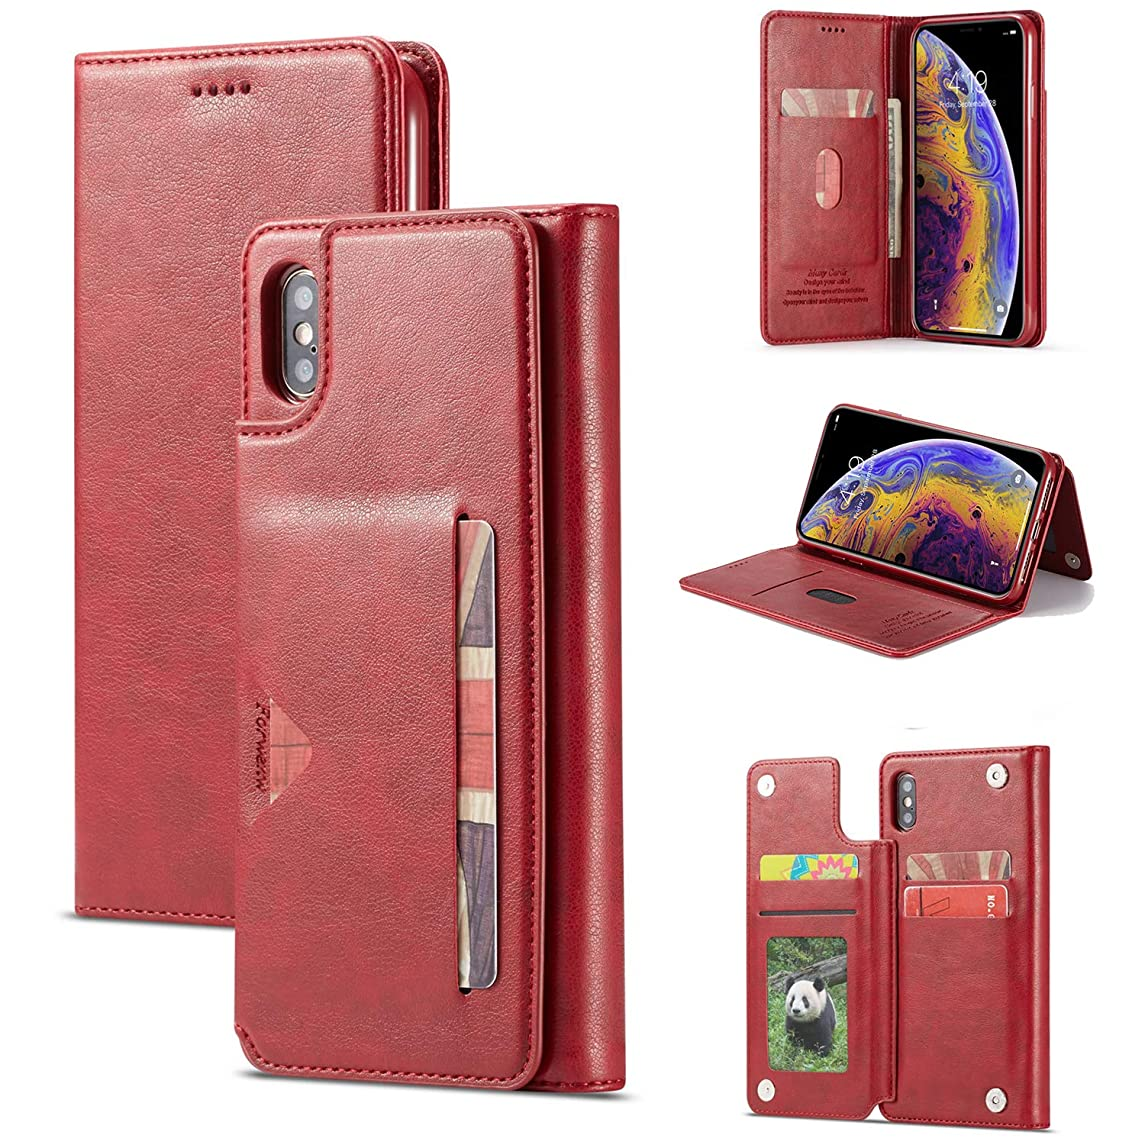 SAVYOU Case for iPhone X Xs Wallet Series [Folio Cover][Stand Feature] Premium iPhone Xs Credit Card Flip Protective Case PU Leather Wallet with Card Slot + Side Pocket Magnetic Closure - Red